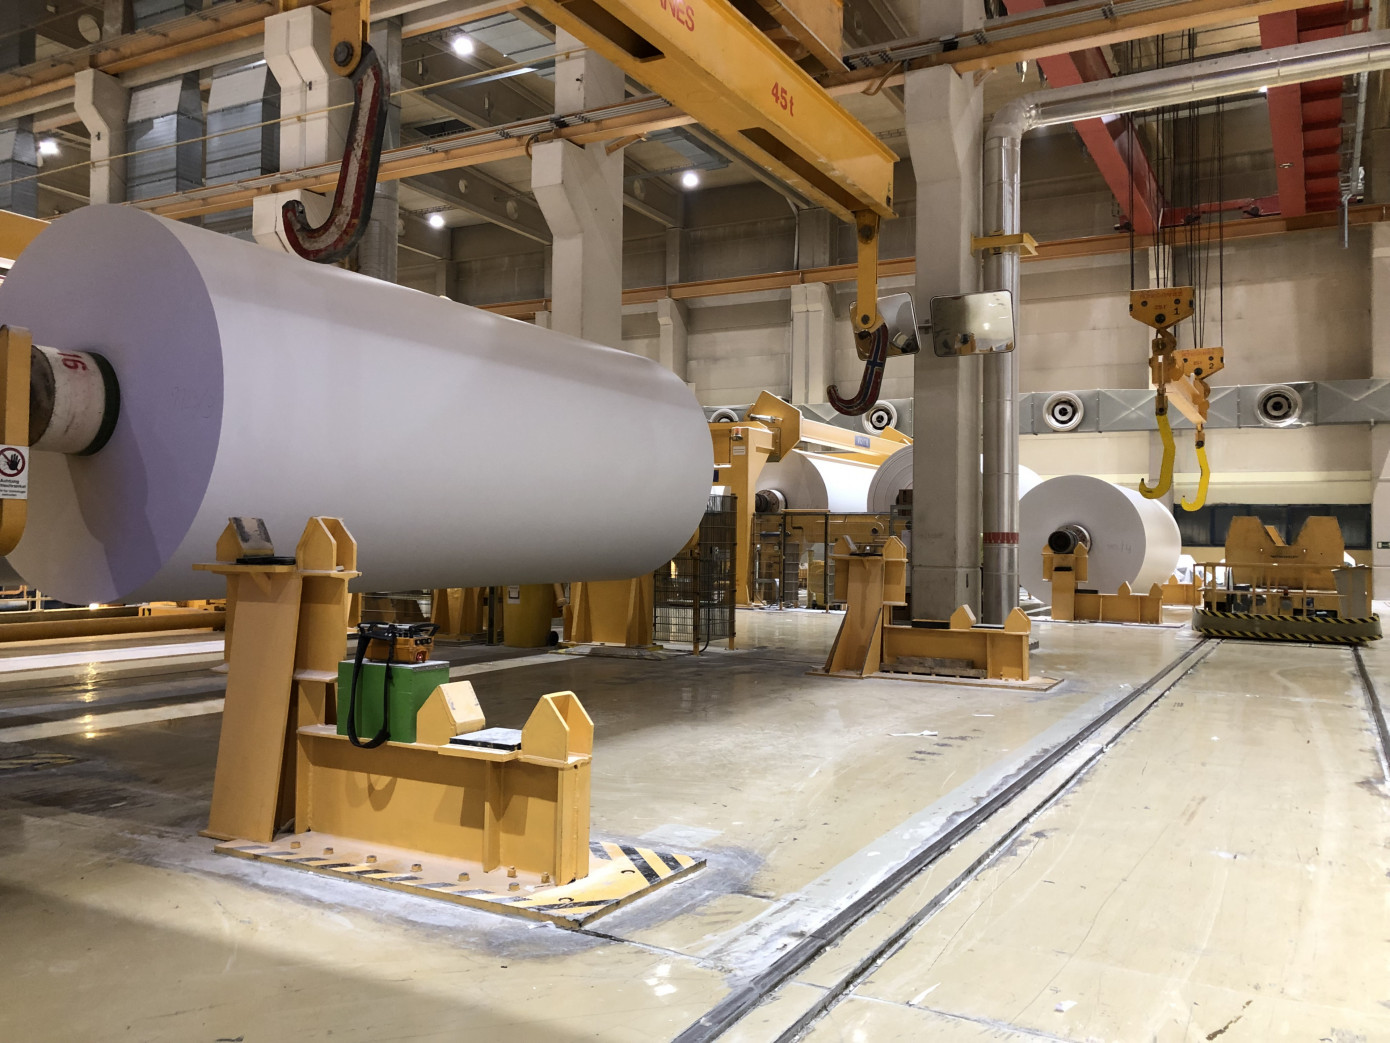 Norske Skog to close the Tasman mill in New Zealand and sell mill assets